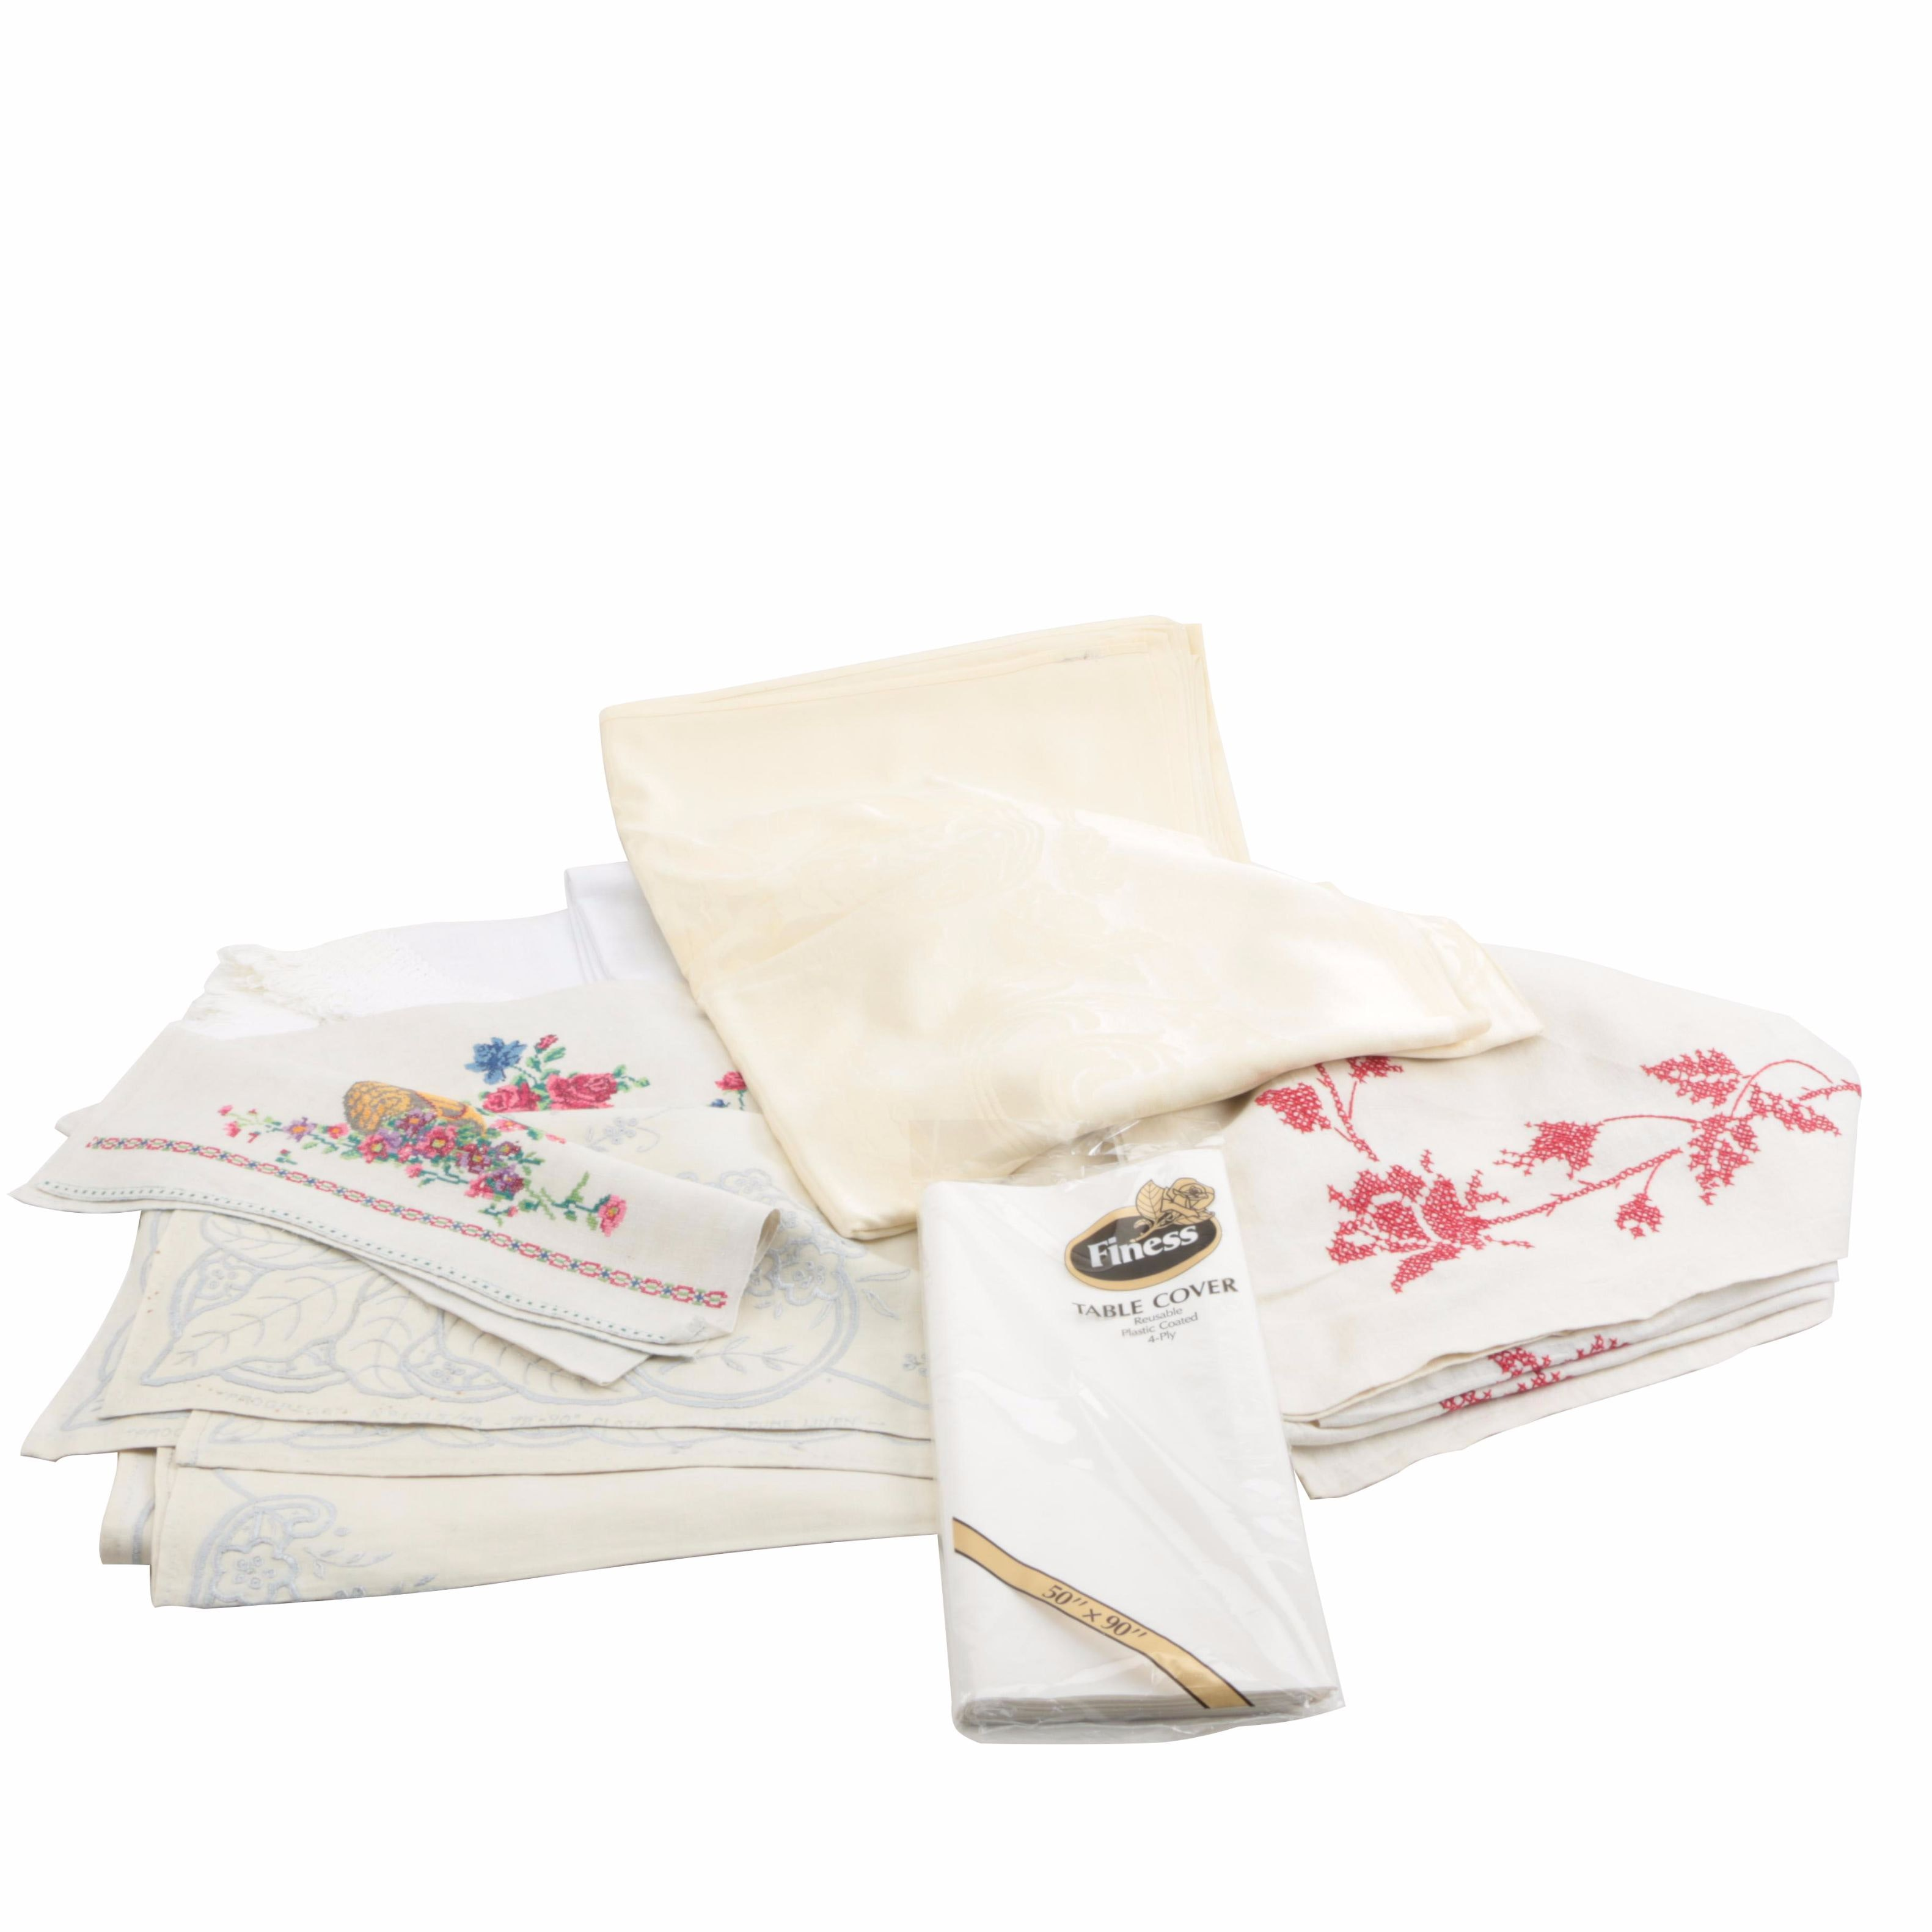 Table Linens and Hand Towels